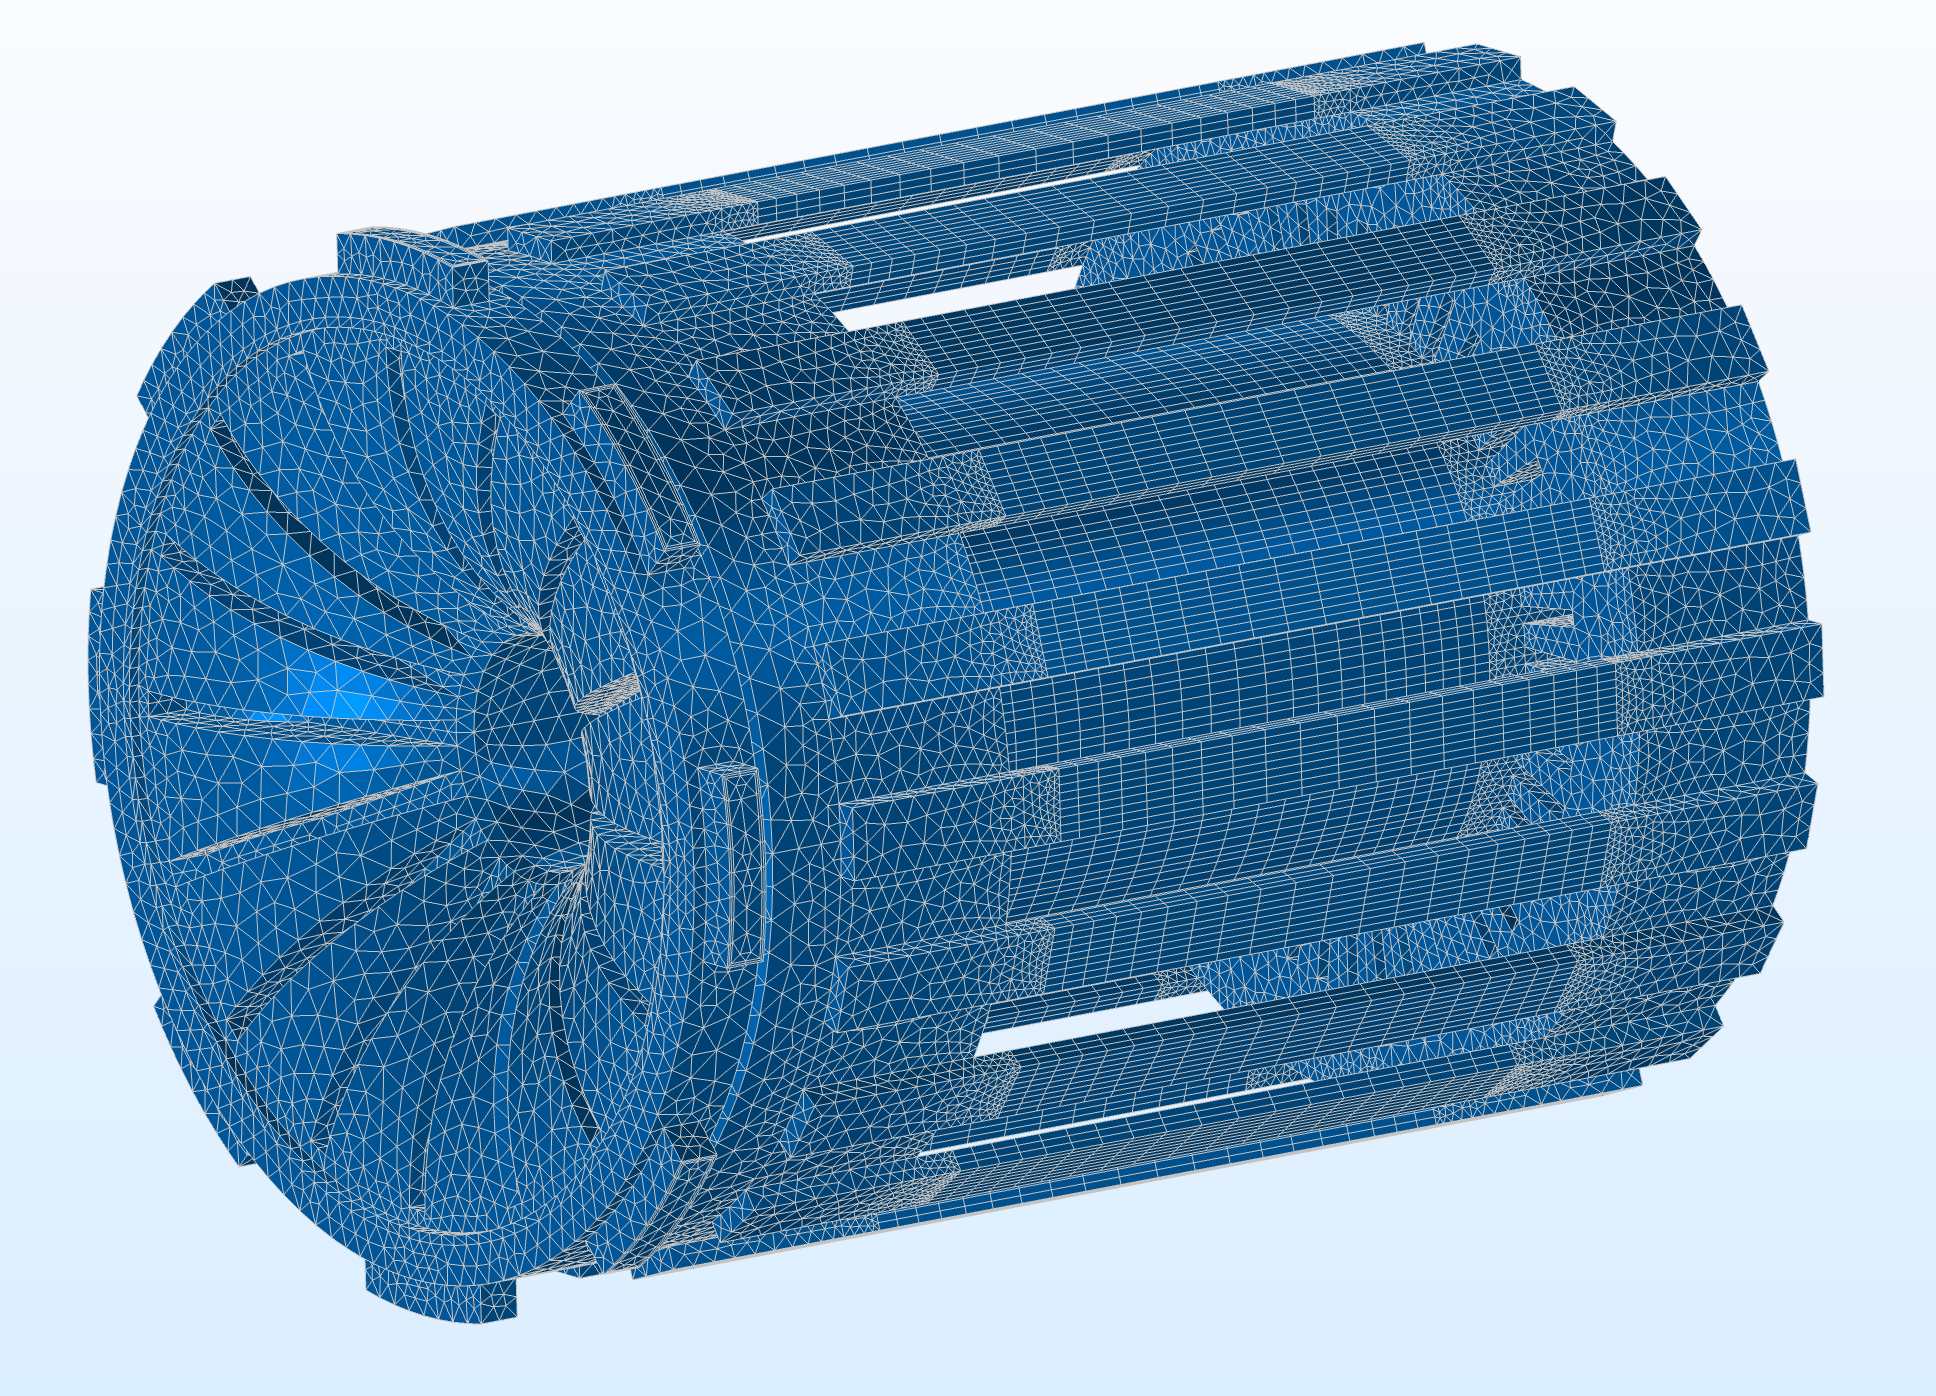 An image showing a fluid flow simulation in an electric motor.